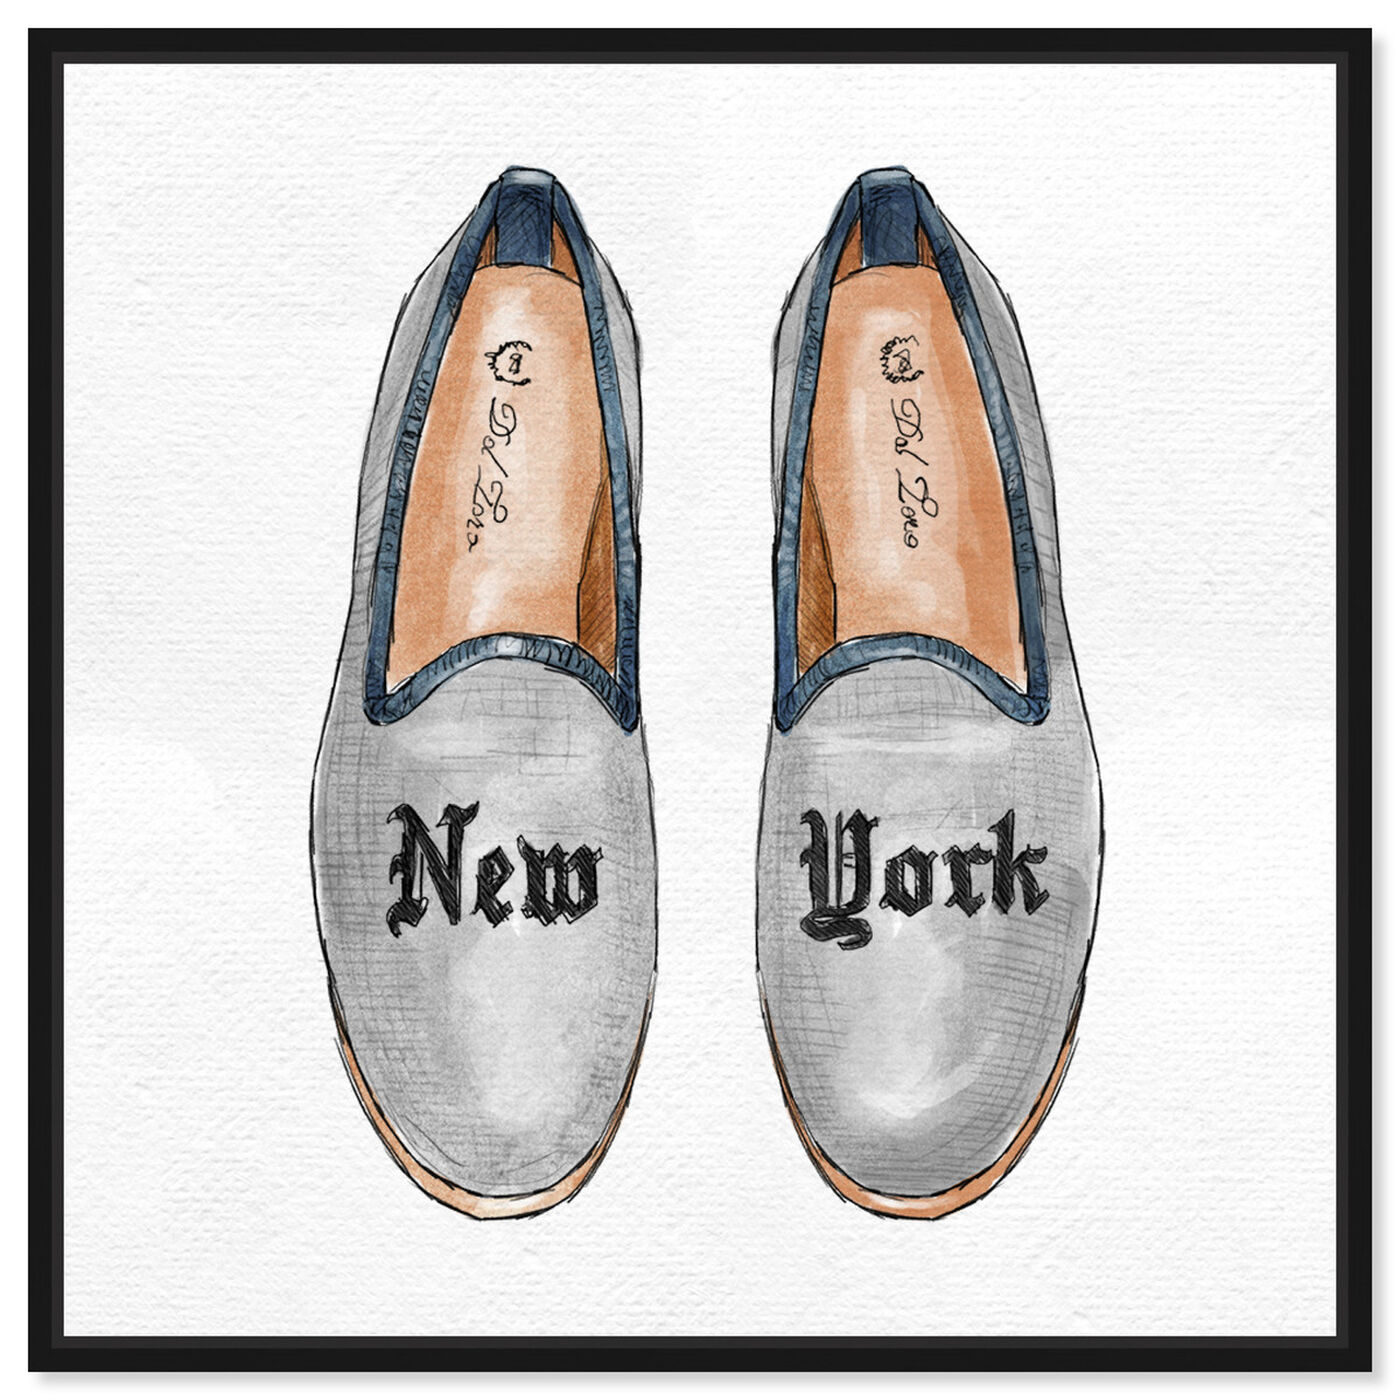 Front view of New York Slippers featuring fashion and glam and shoes art.